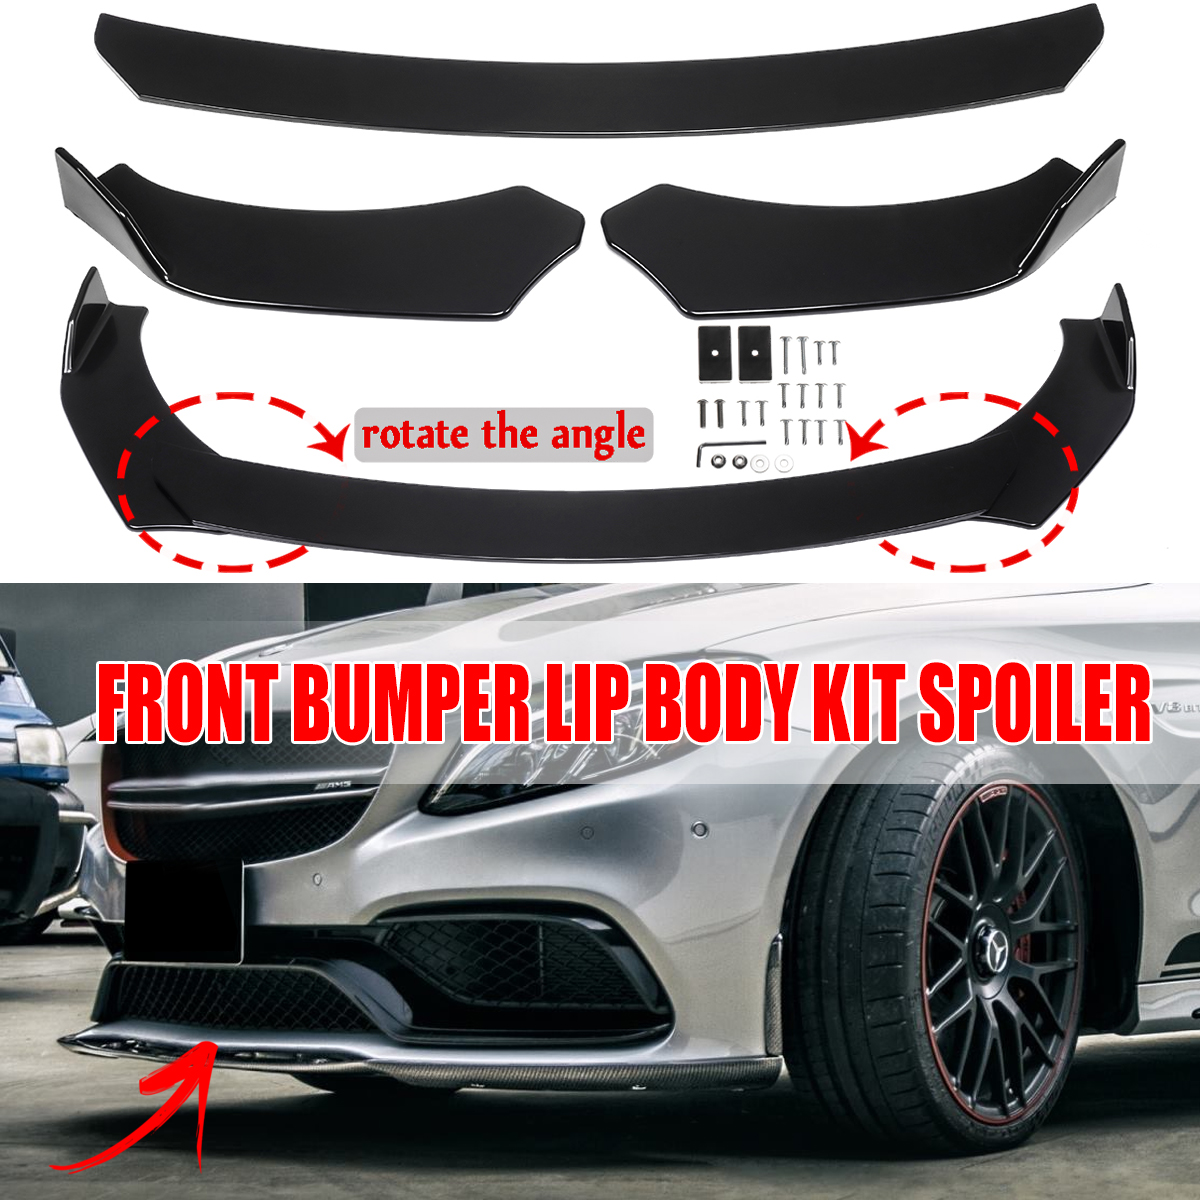 Front Bumper Lip Fits Universal Vehicles 24 Inch x 4 Inch IKONStyle Black PP Front Lip Finisher Under Chin Spoiler Add On by IKON MOTORSPORTS